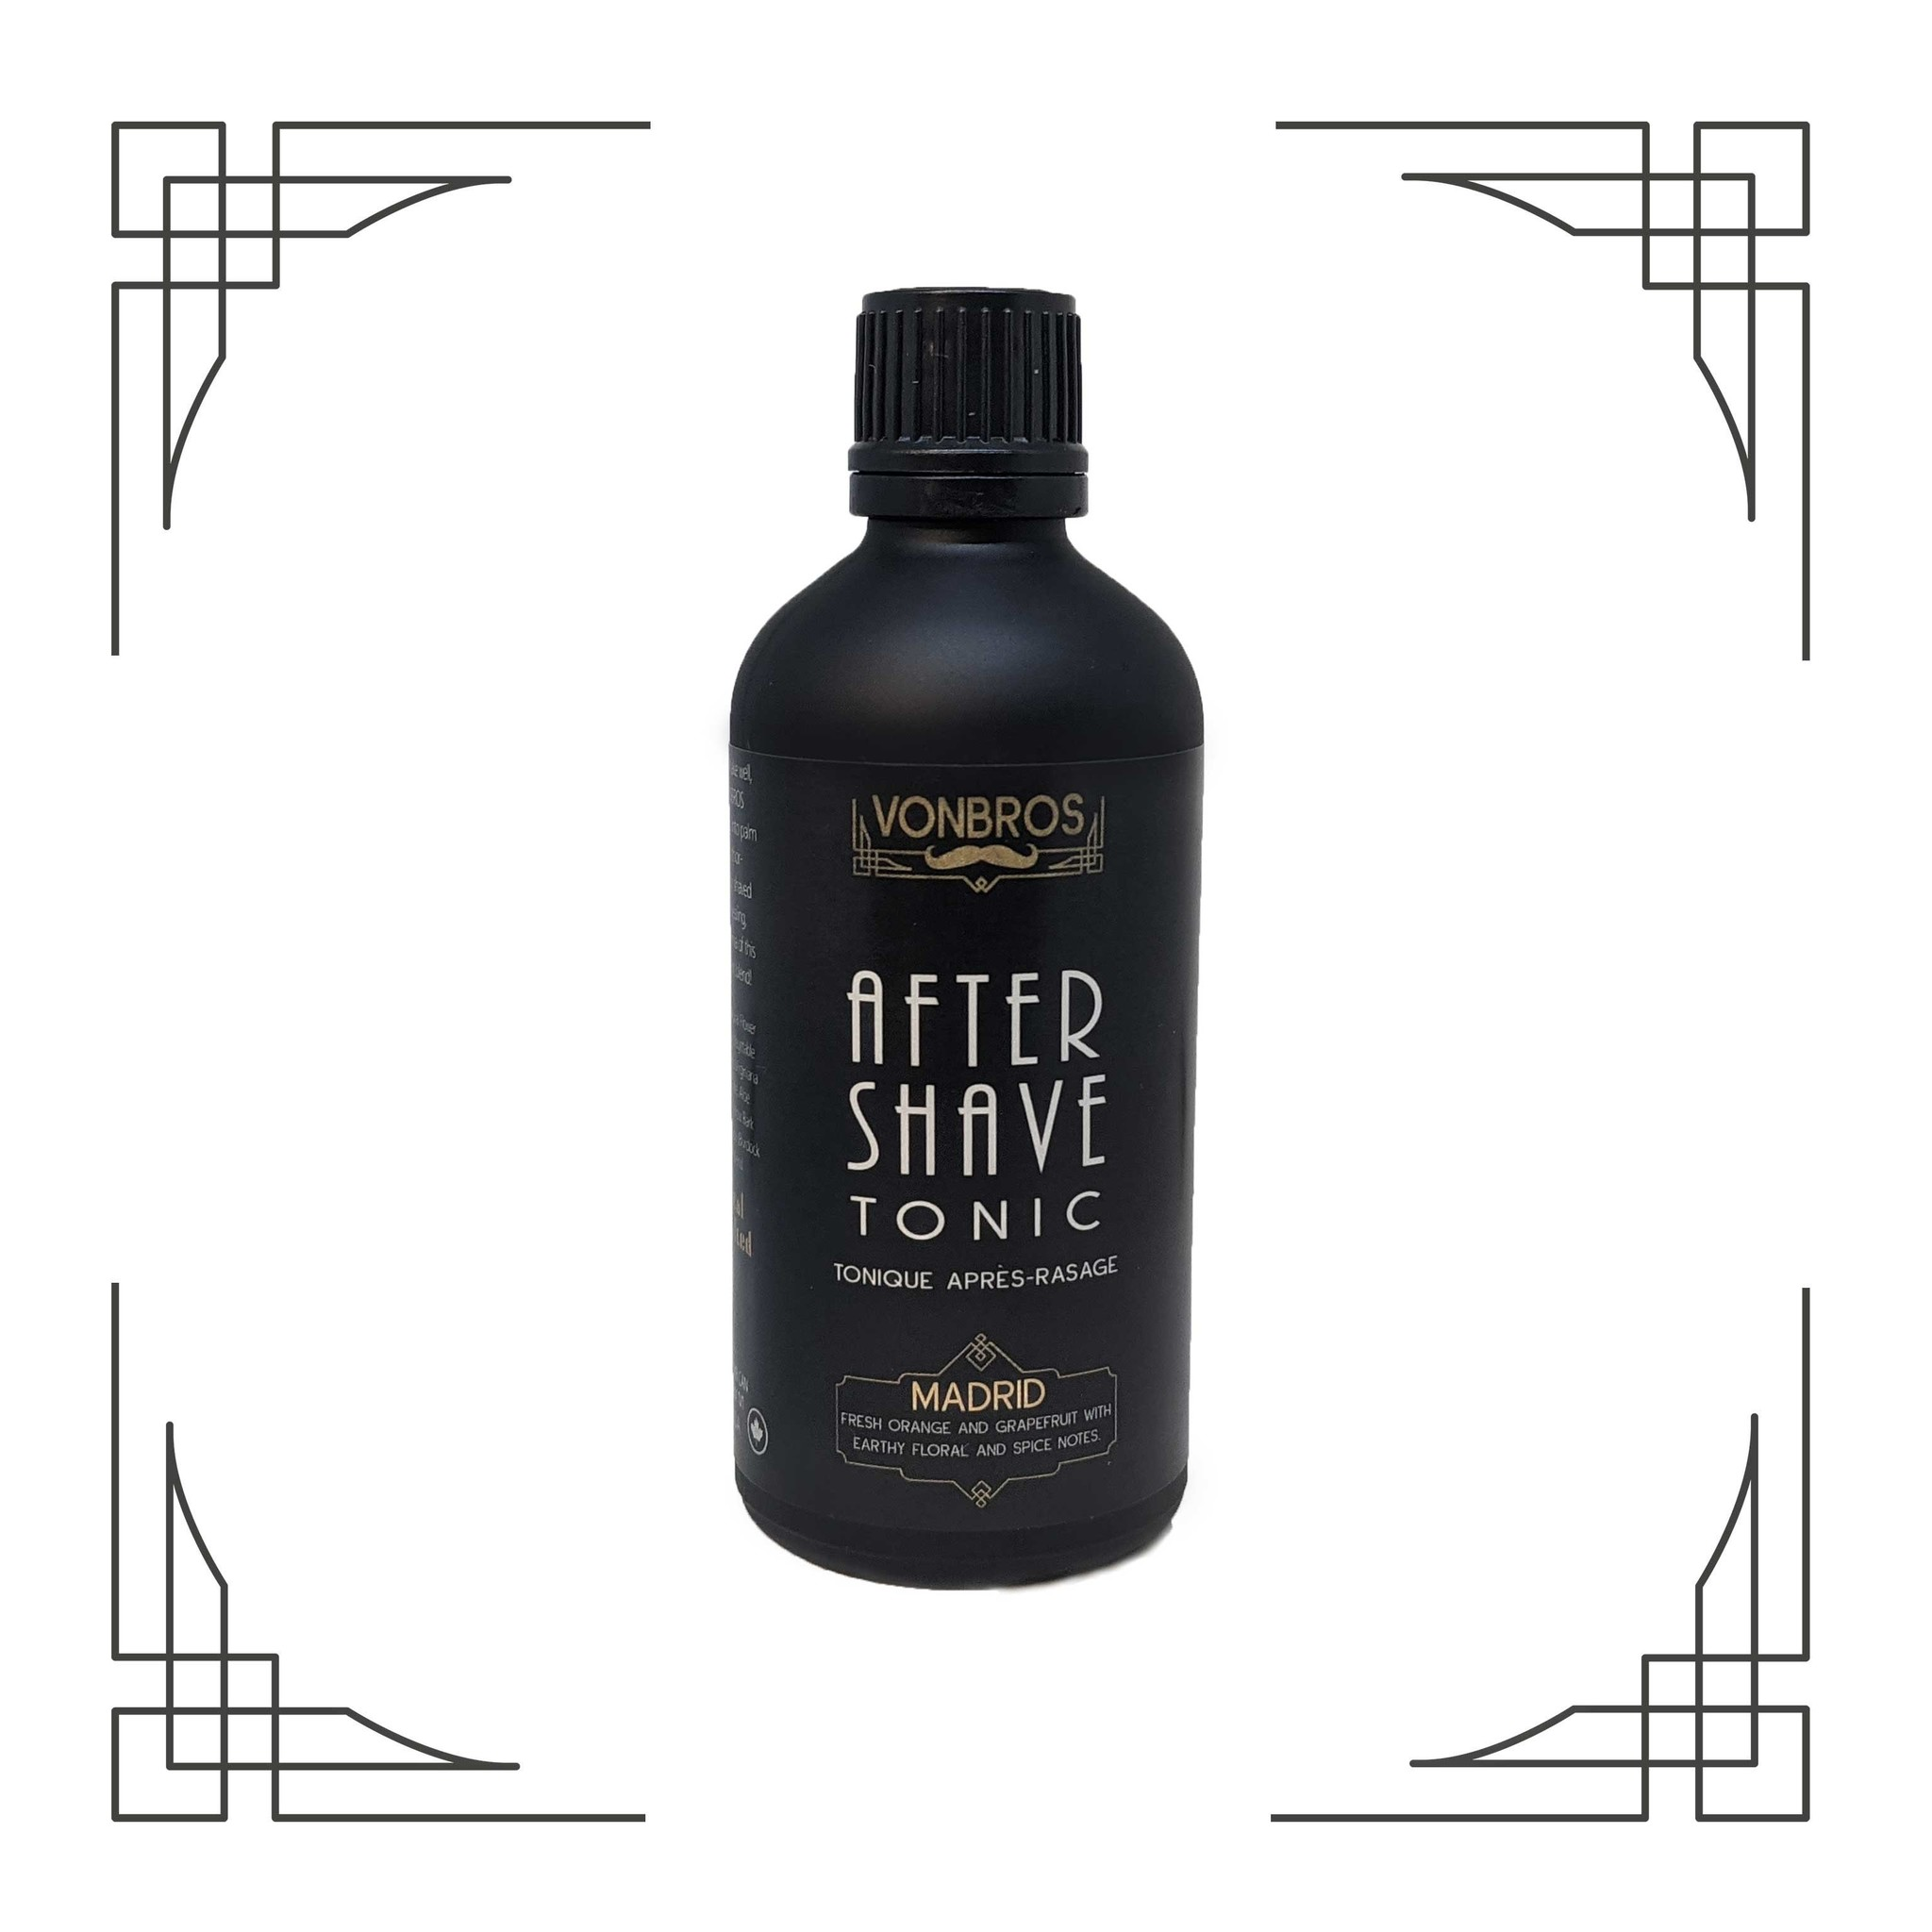 Aftershave Tonic (Madrid)-1